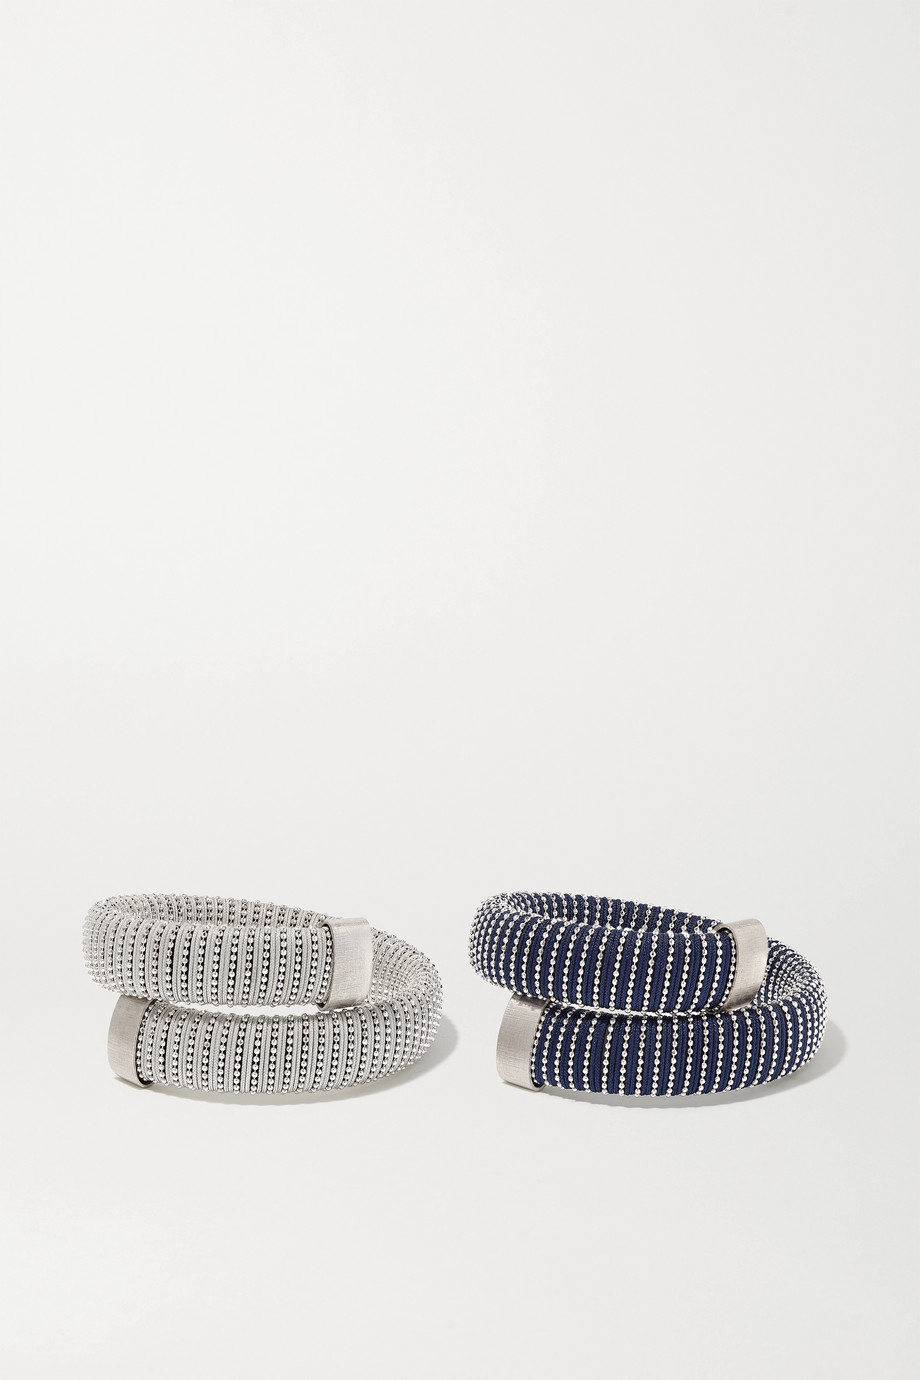 Carolina Bucci Caro set of two white gold-plated and cotton bracelets